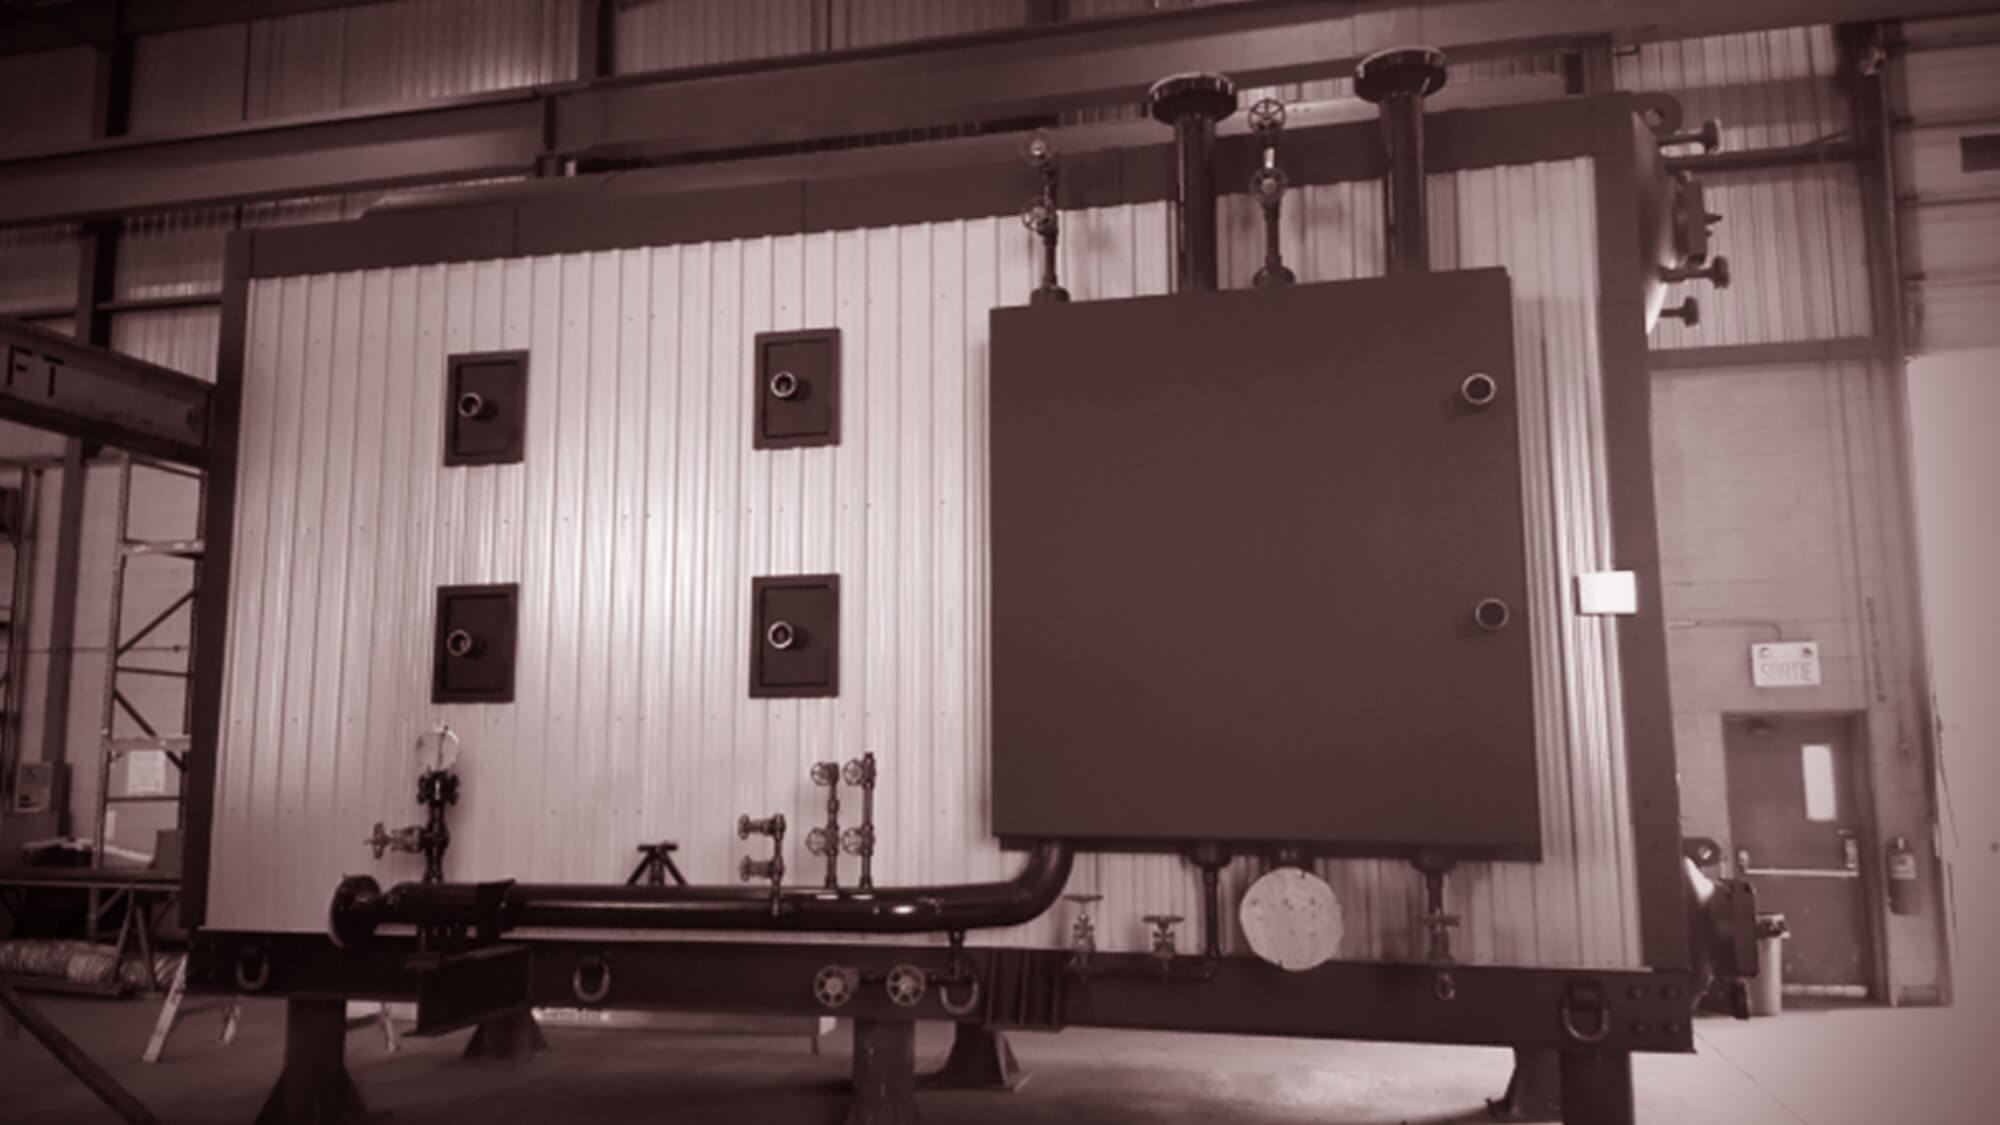 Biomass Boilers - Making energy out of waste